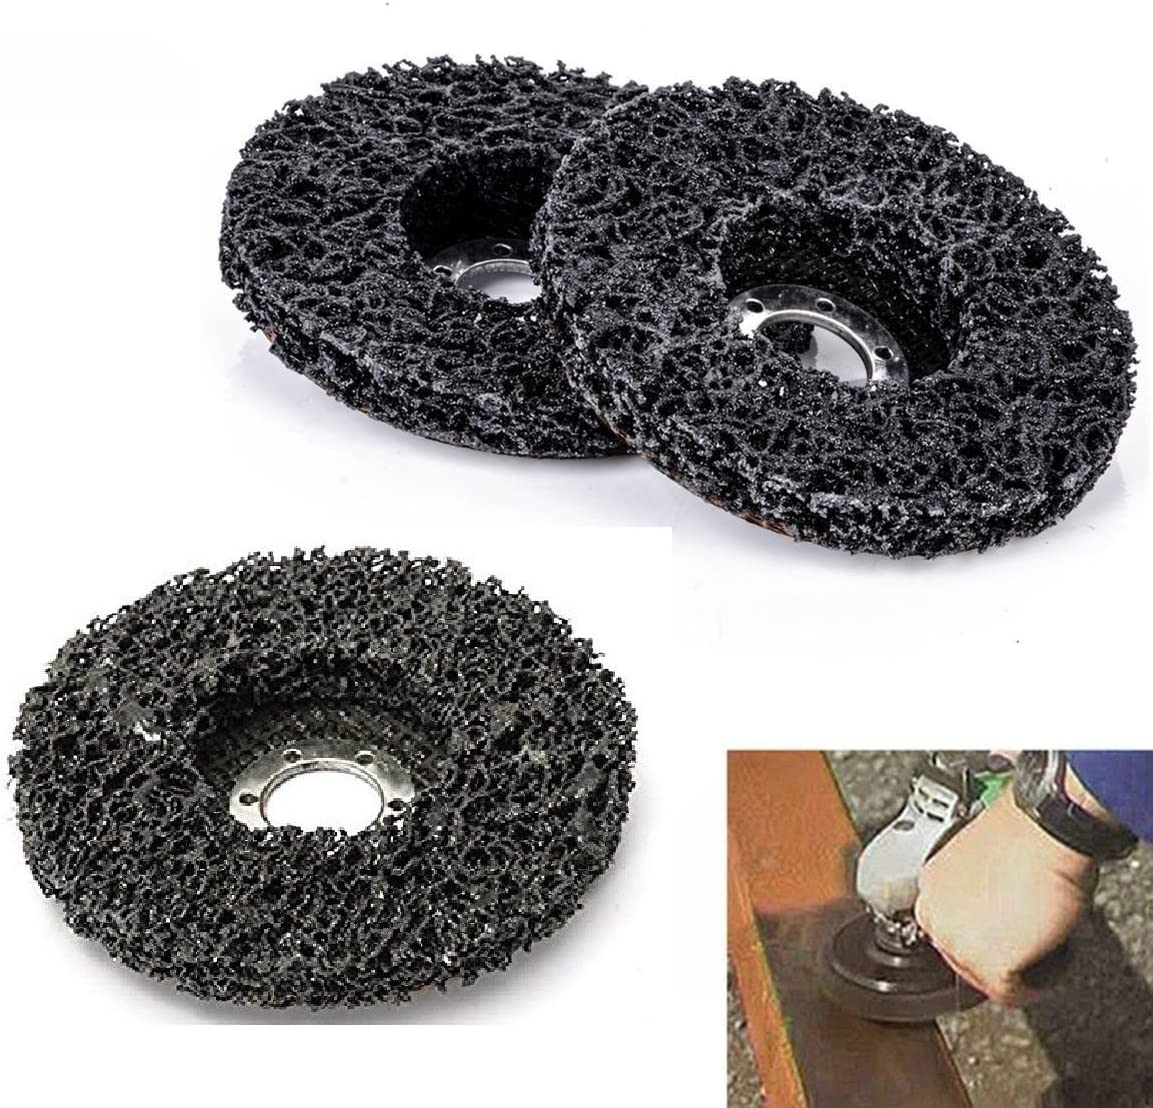 "10 Pack 4-1/2"" X 7/8""-5/8"" Black Stripping Wheel Strip Discs Clean Adhesive Removal Paint Coating Rust Oxidation für Holz Metal Fiberglass Sander Grinder Polisher Grinding Burnishing Silicon Carbide"